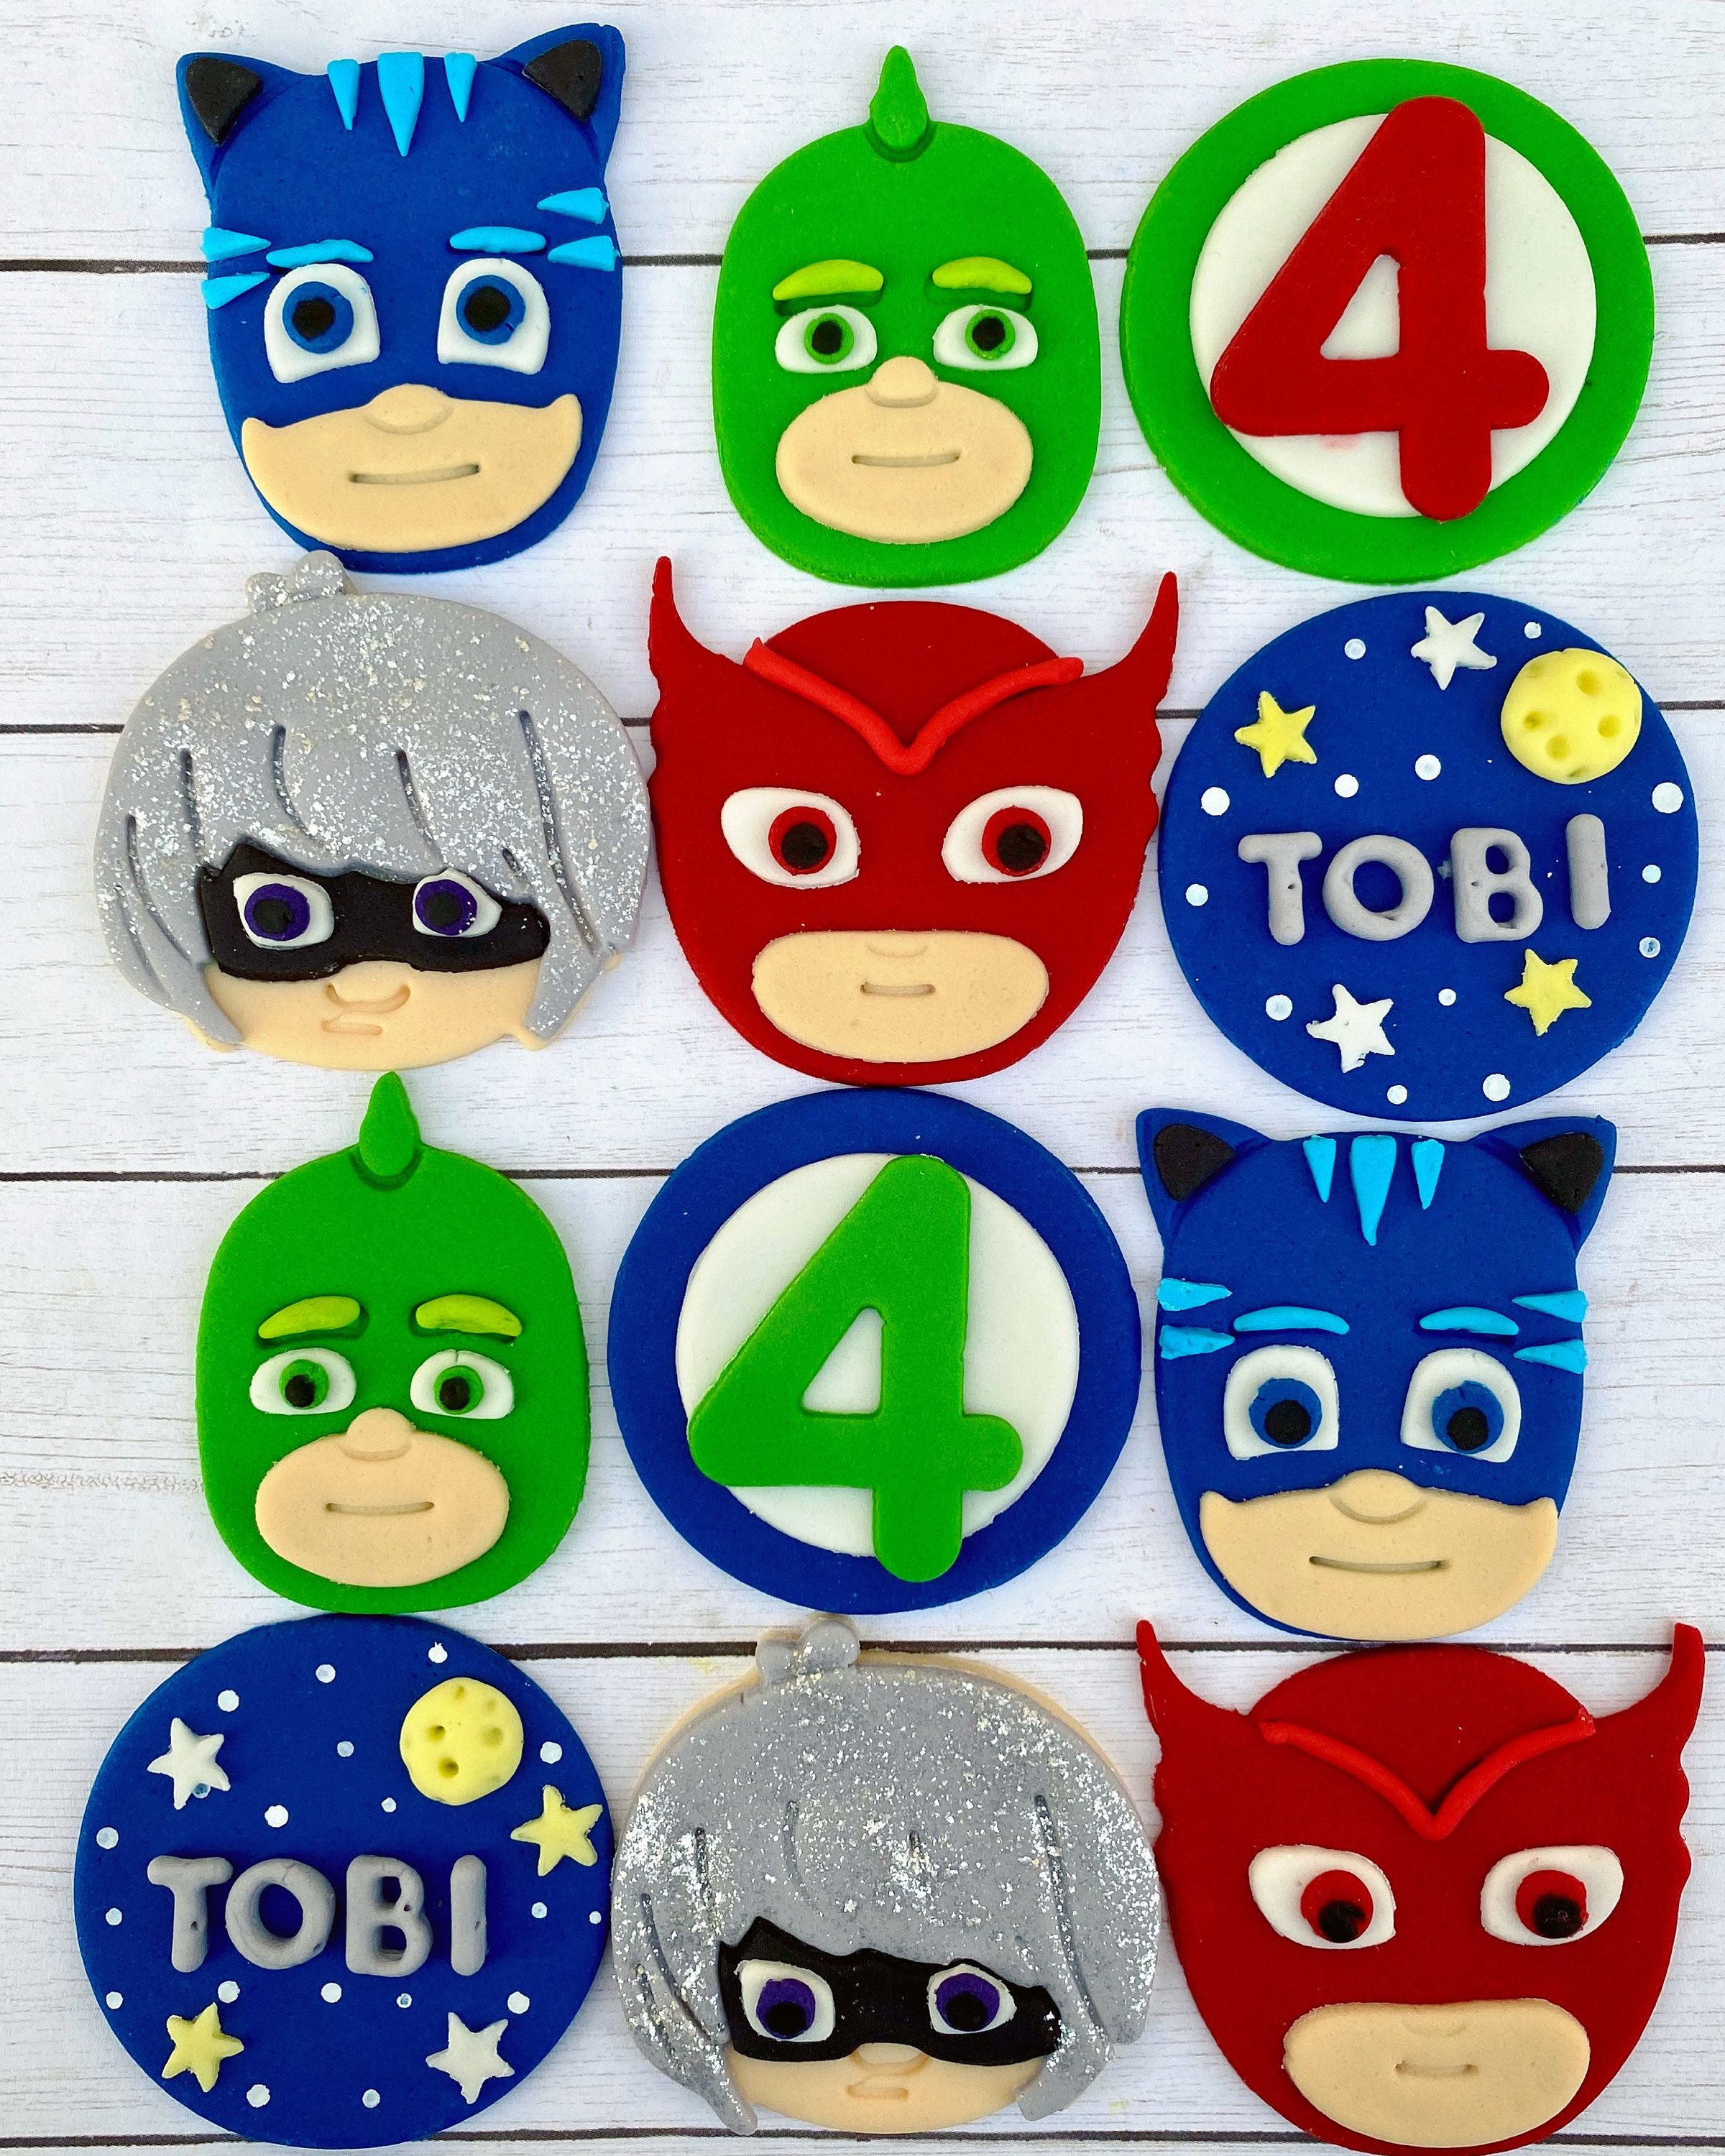 Edible fondant pj mask themed cupcake treat toppers in